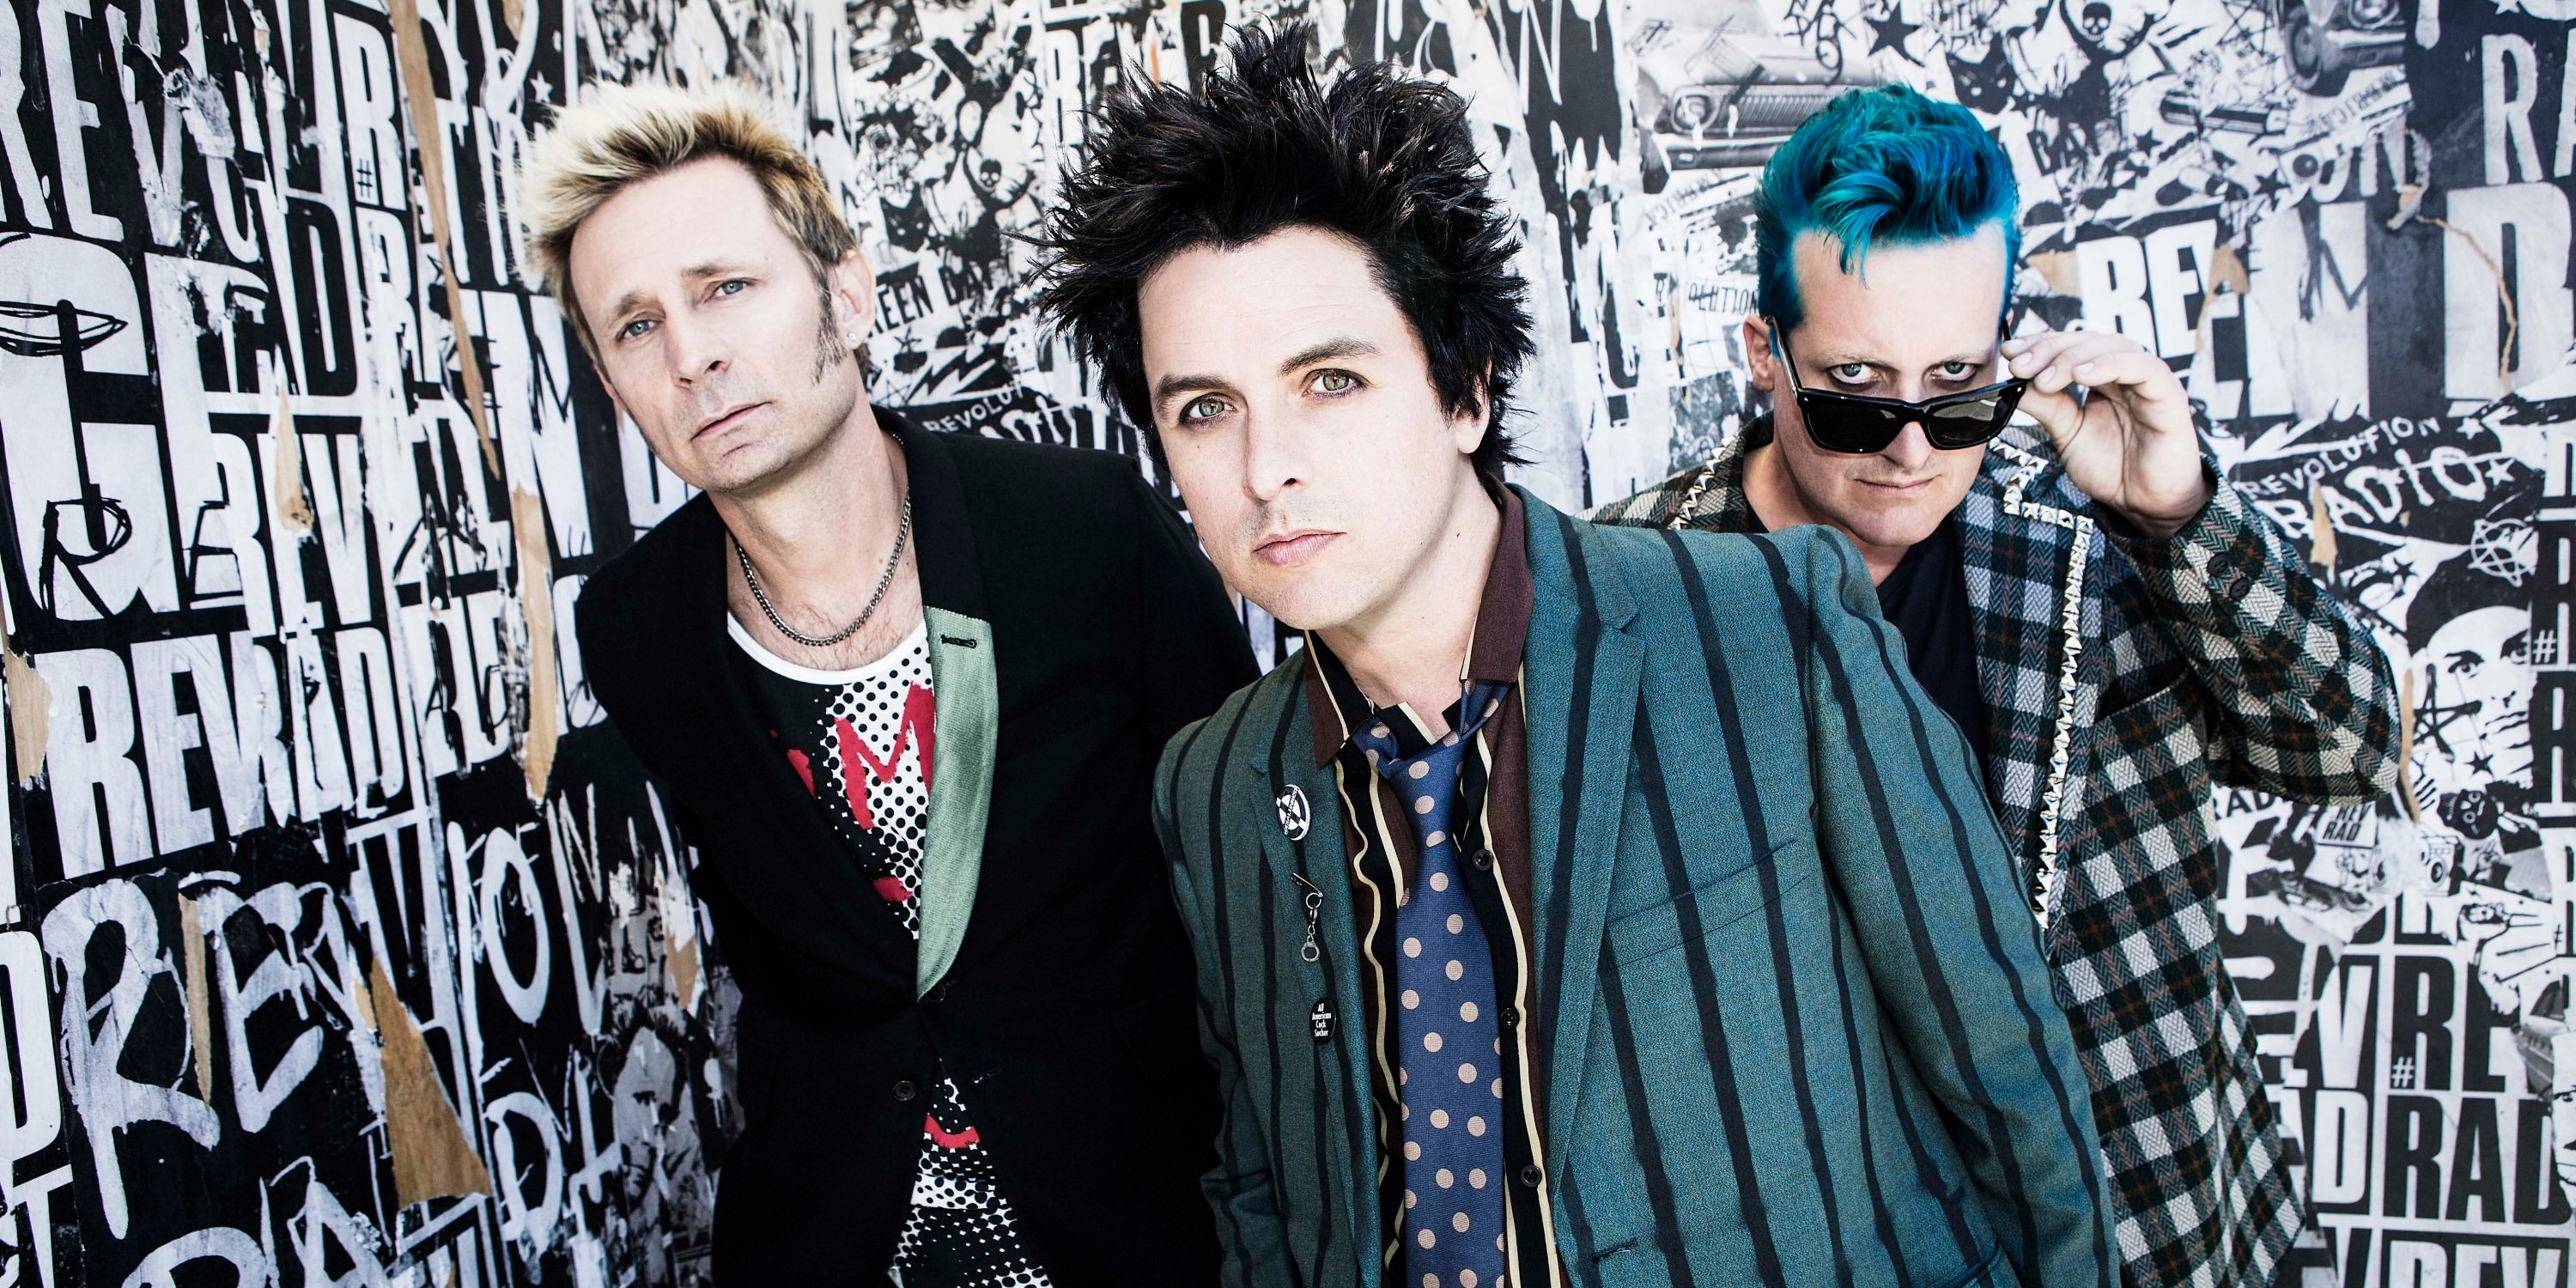 Green Day announces new book, Last of the American Girls